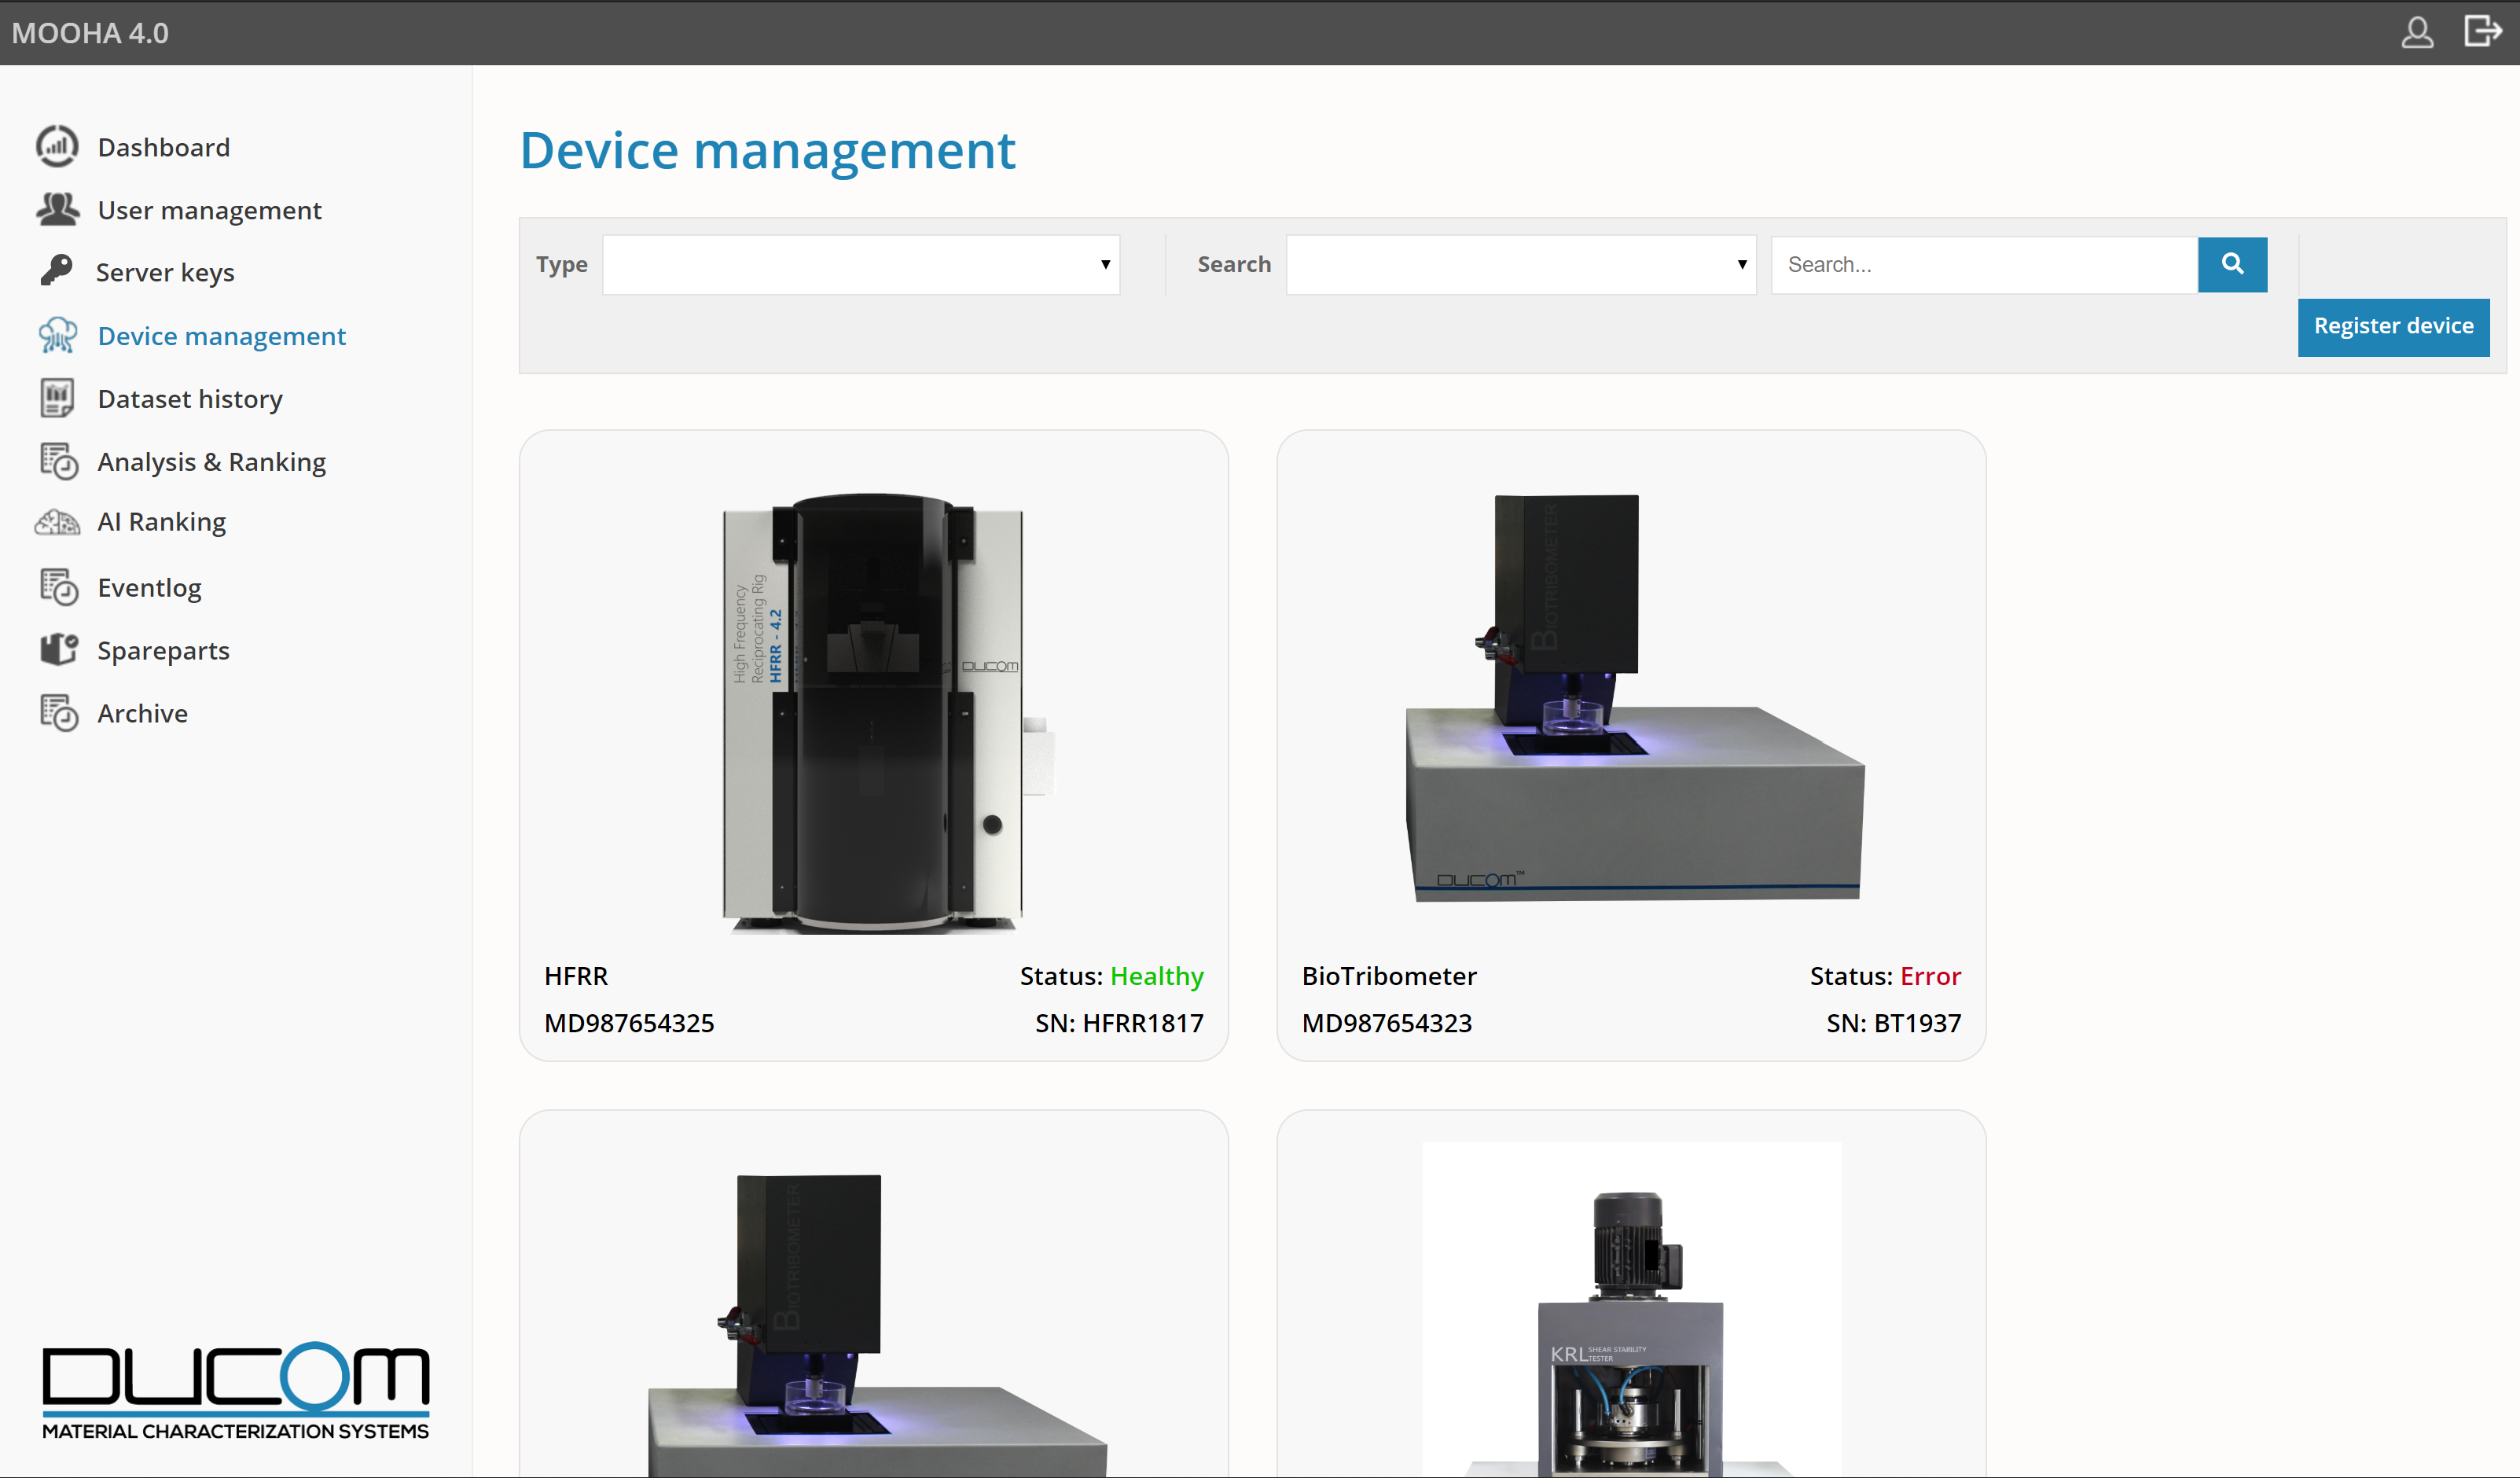 MOOHA - Device Management